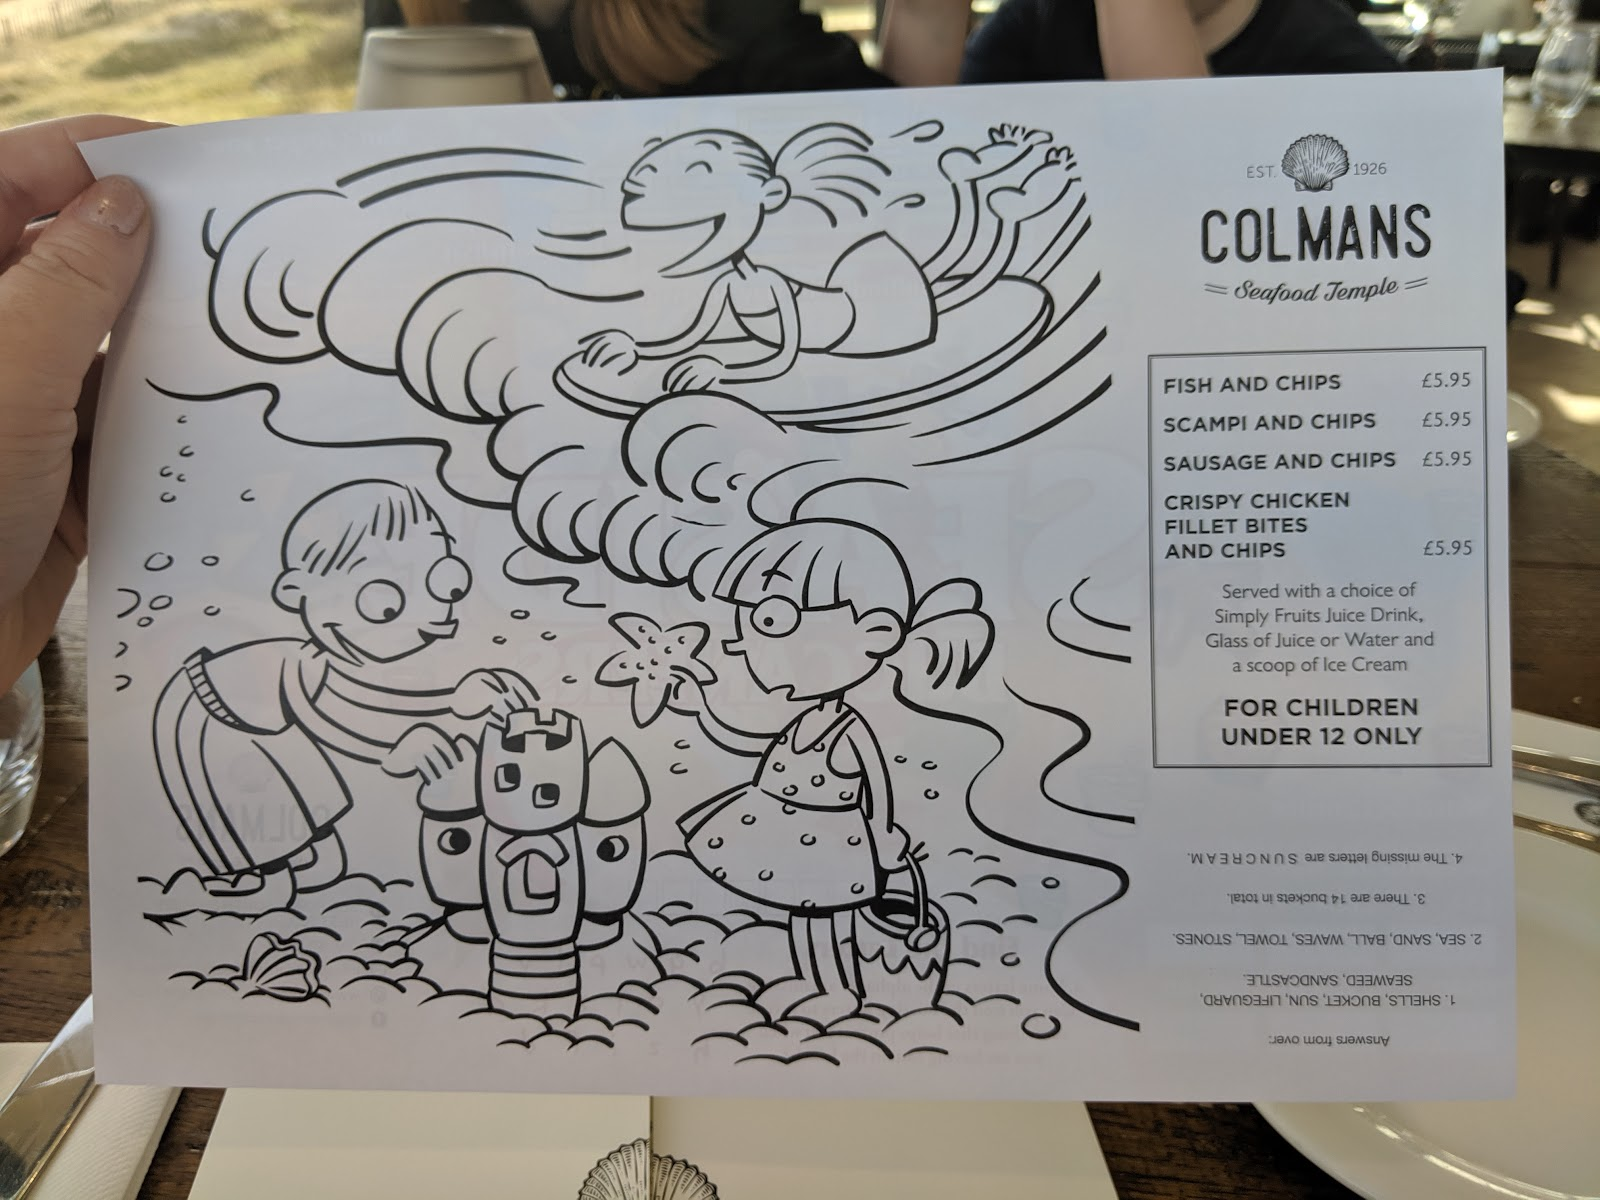 Fish & Chips from Colmans Seafood Temple : A Review - kids menu